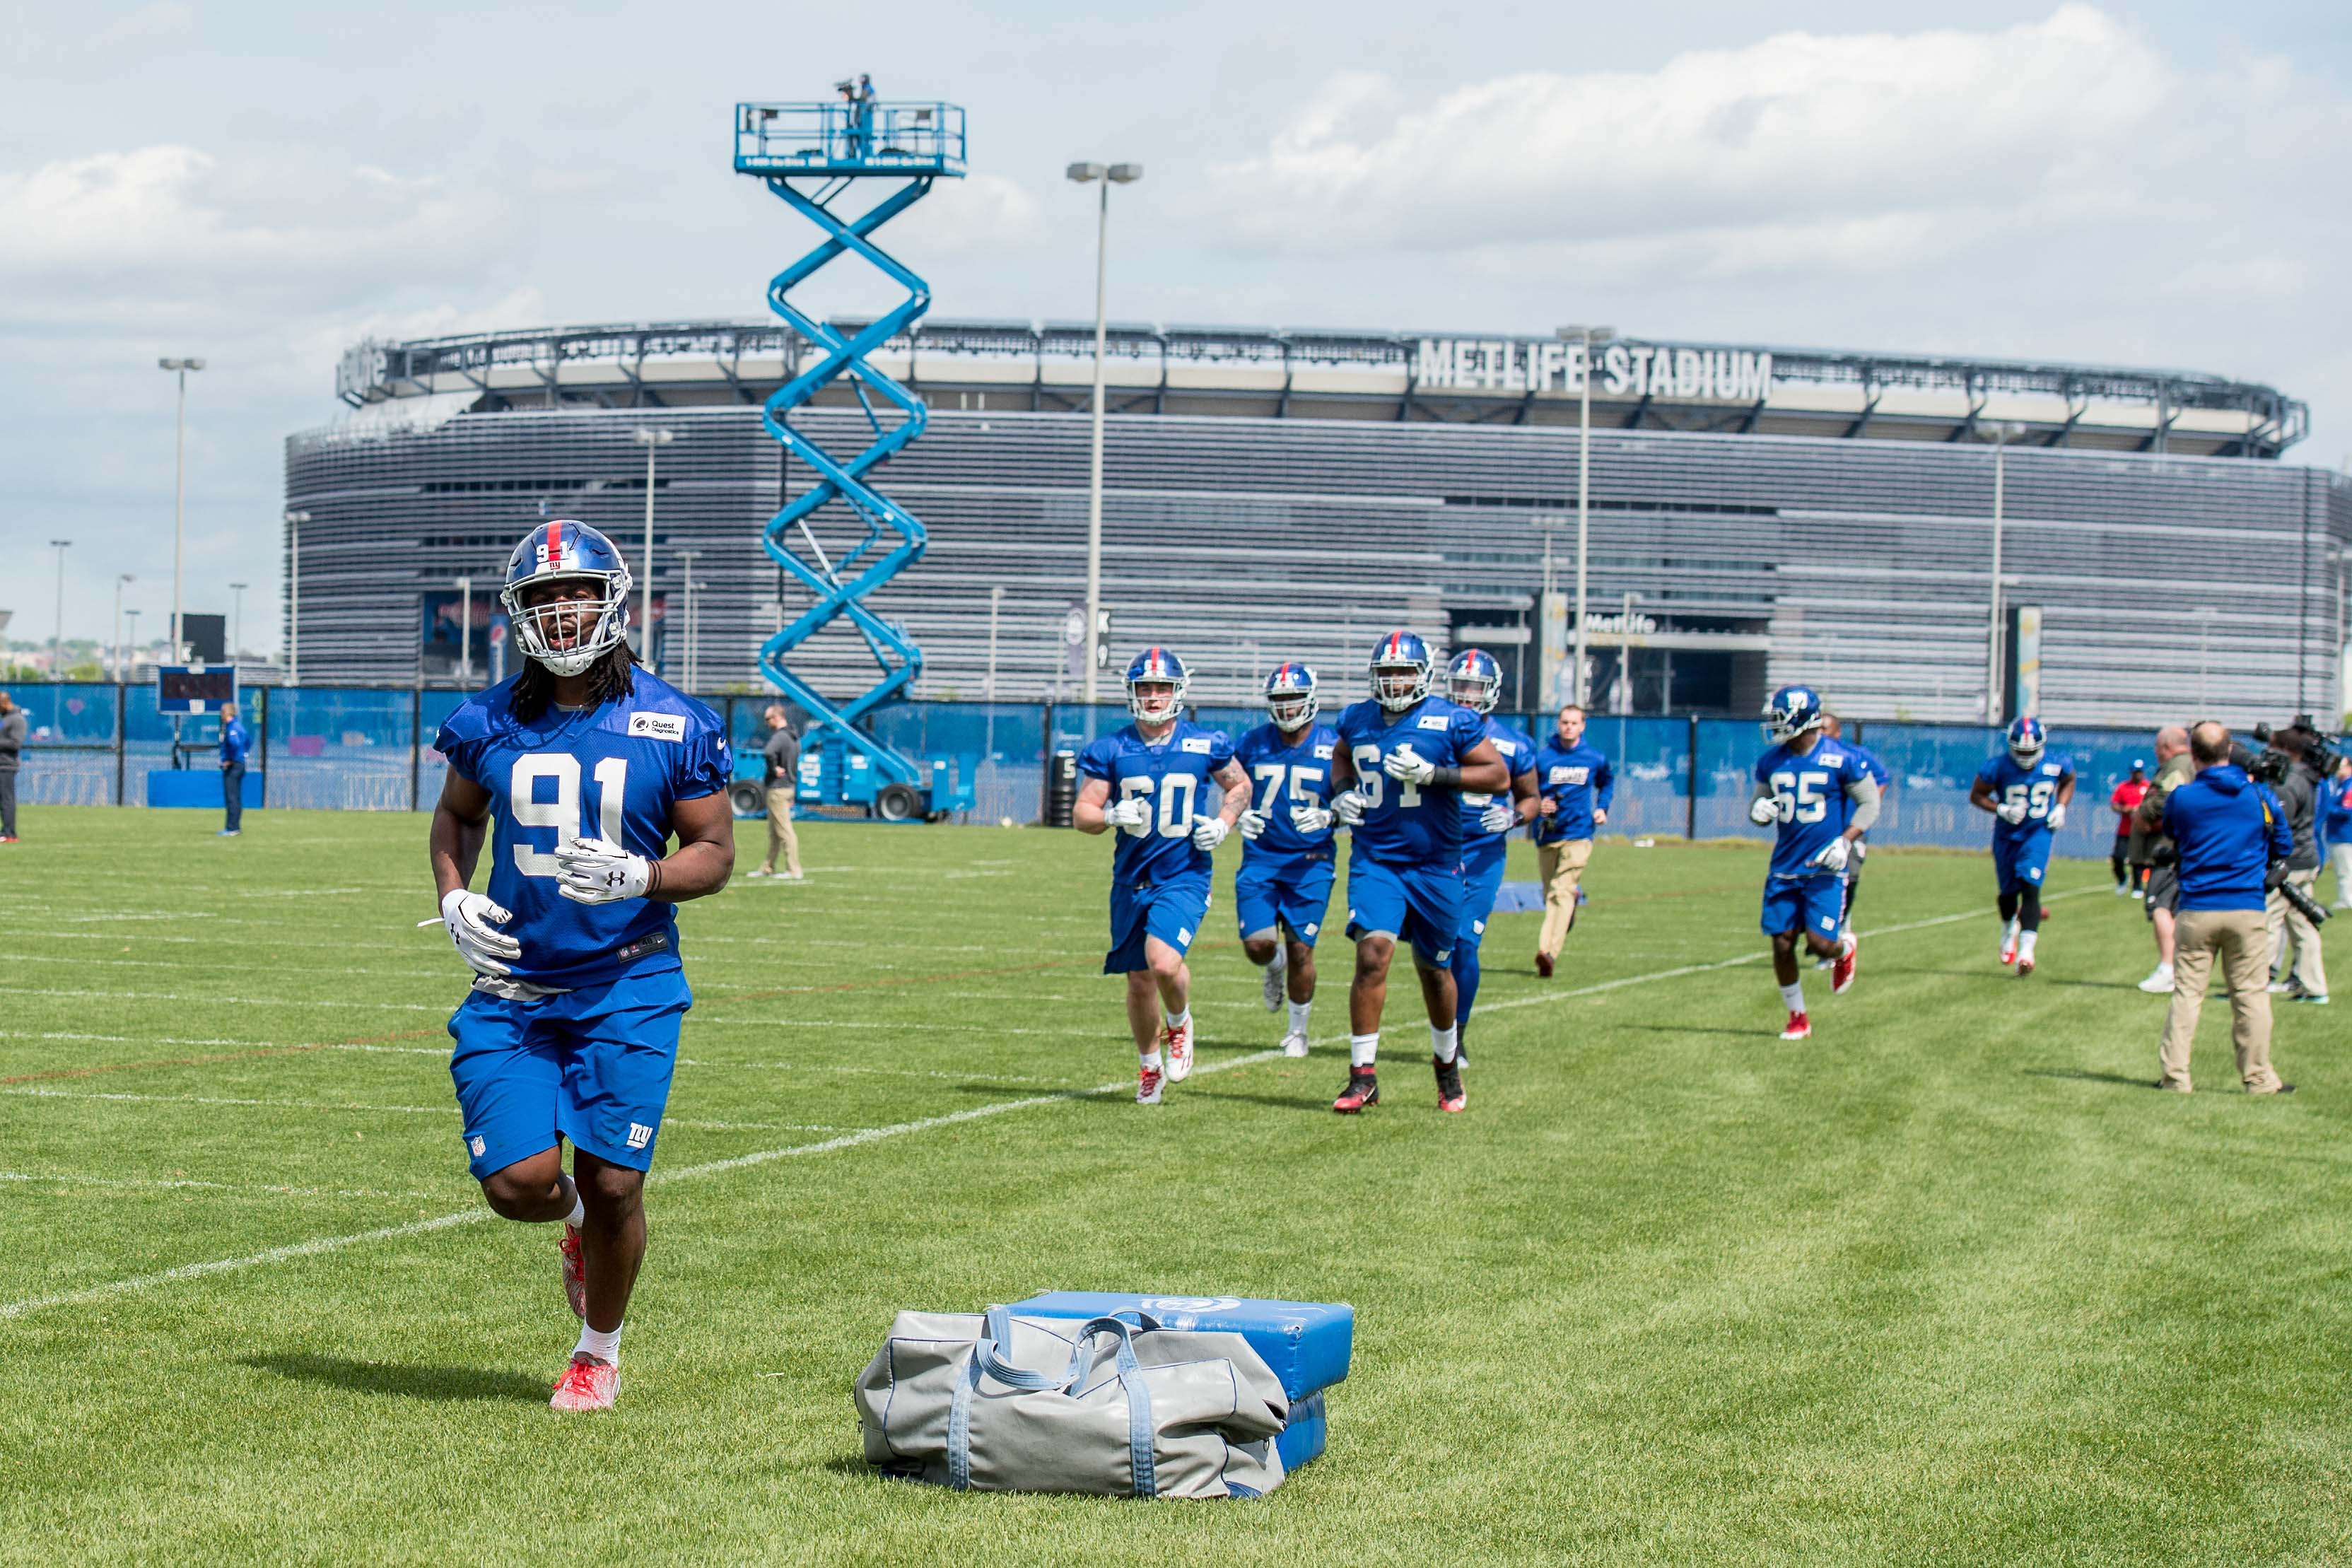 10053396-nfl-new-york-giants-rookie-minicamp